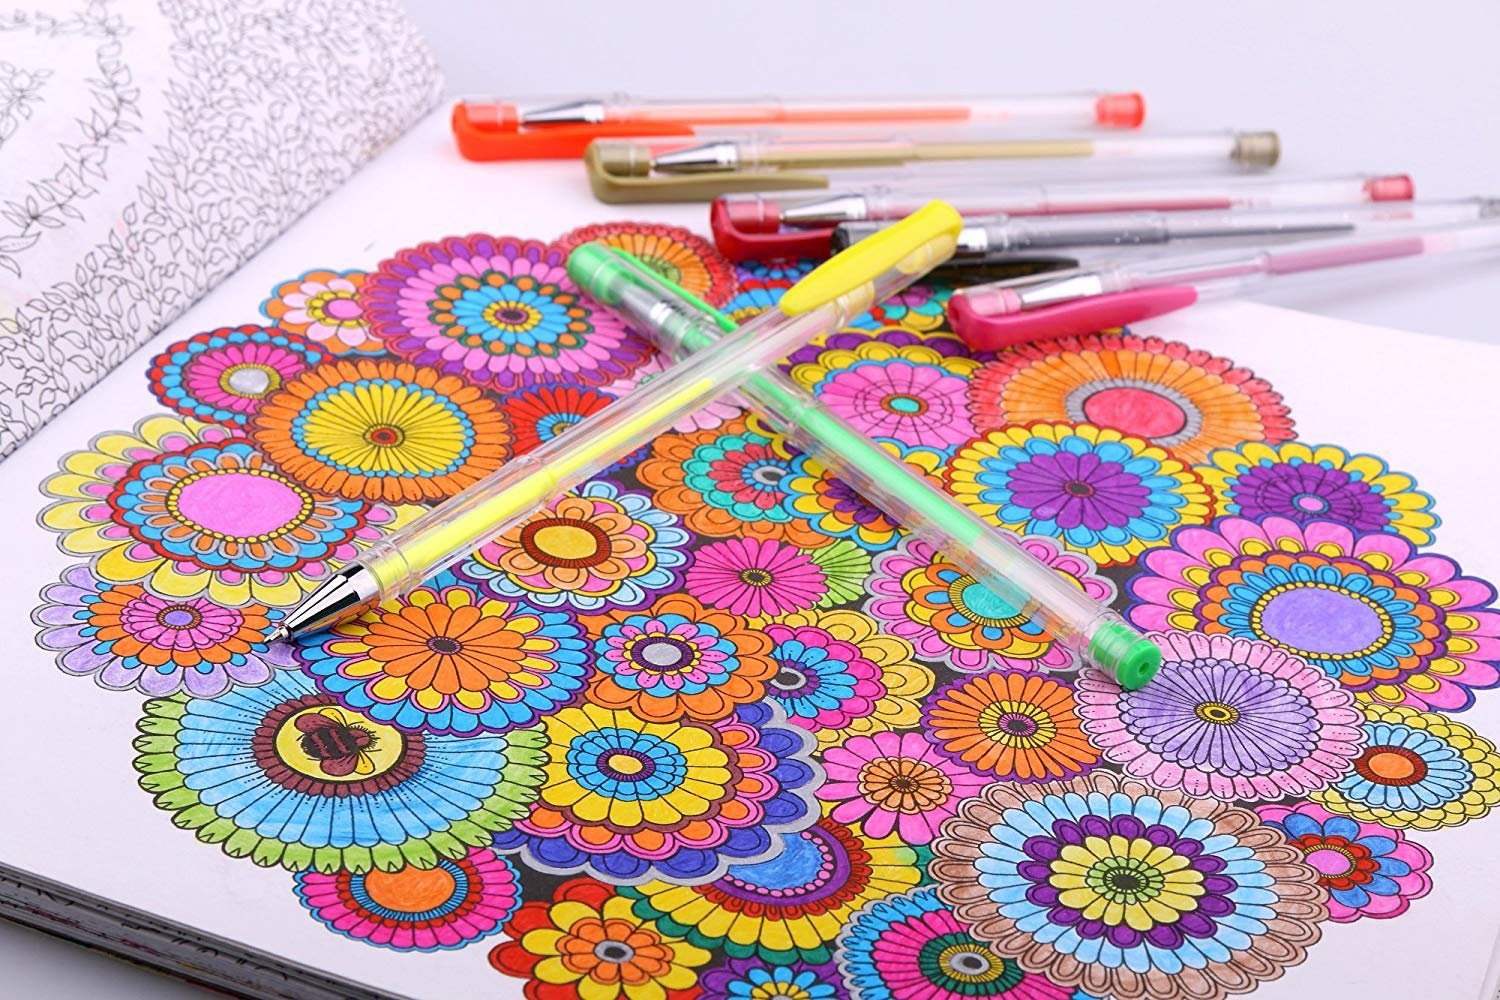 Smart Color Art 140 Colors Gel Pens Set Gel Pen for Adult Coloring Books Drawing Painting Writing by Smart Color Art (Image #5)